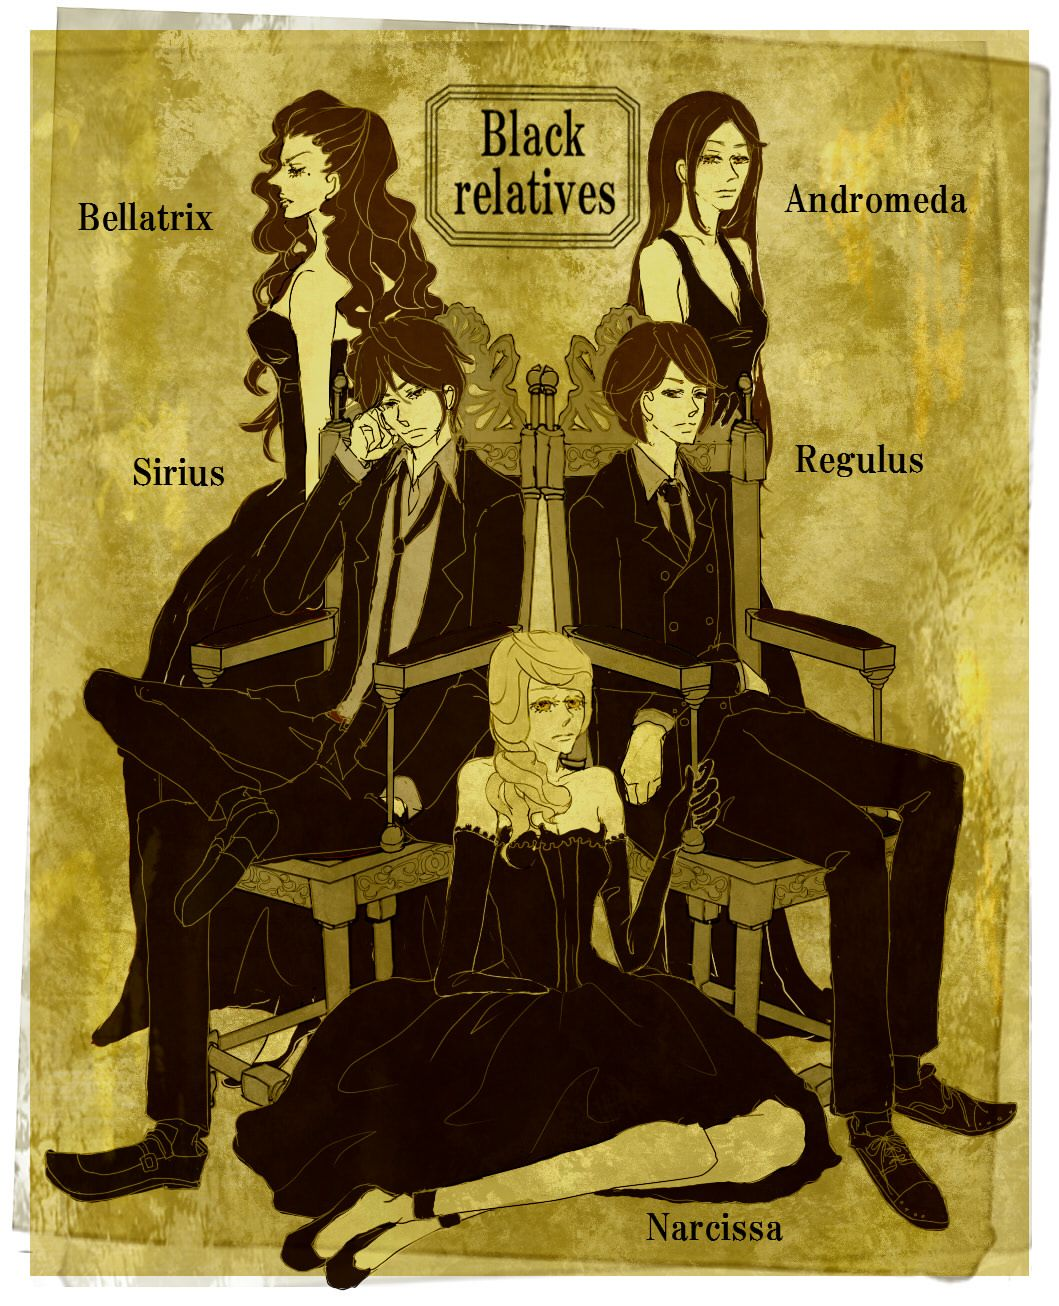 The Black Family Marauder S Era The Black Family Interests Me For Some Reason I Don T Know Harry Potter Universal Harry Potter Anime Harry Potter Obsession